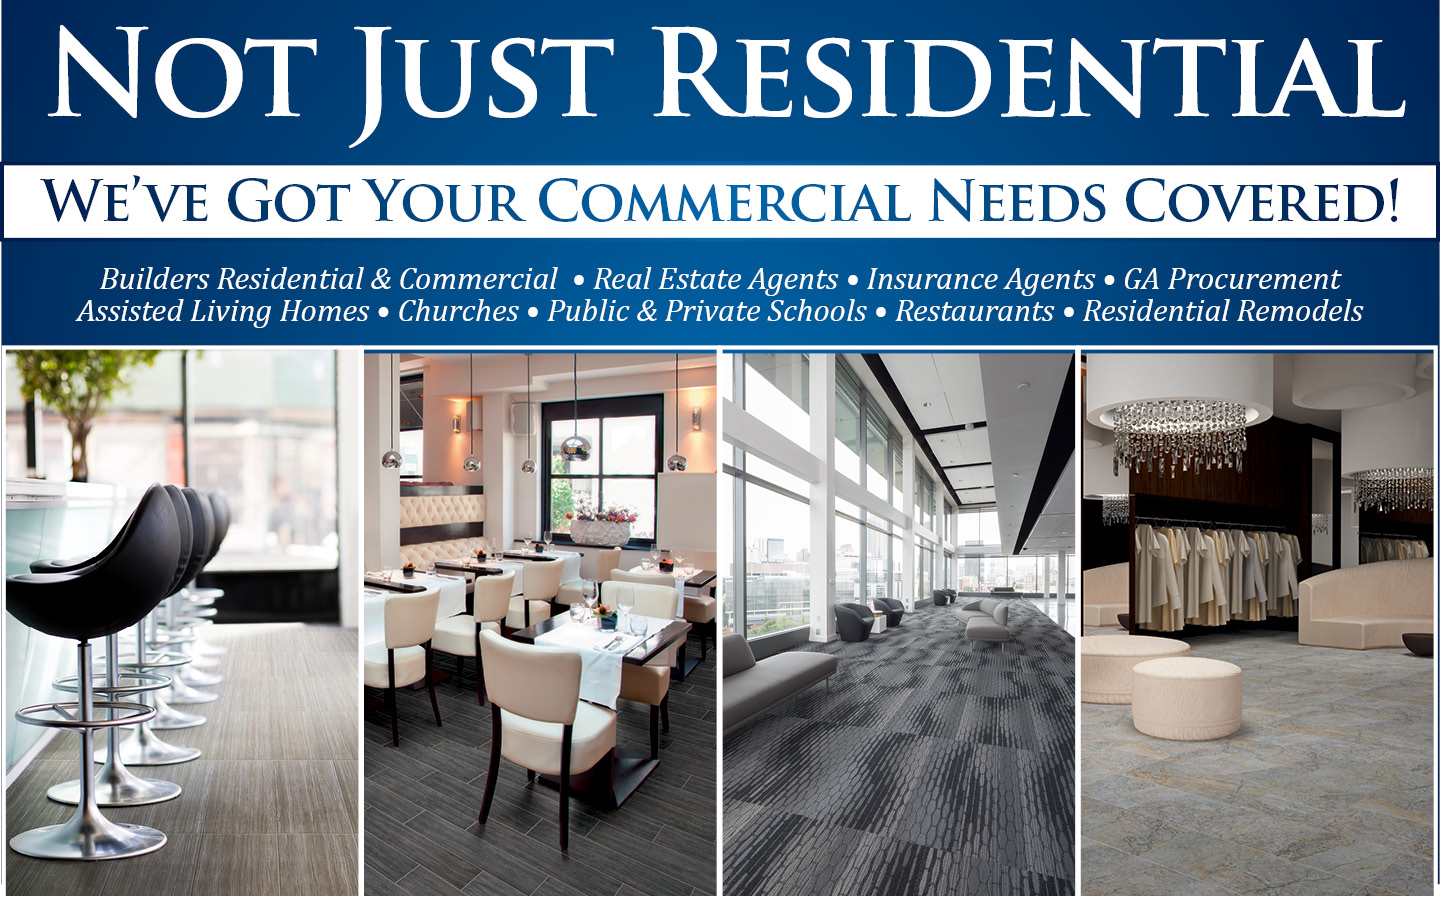 Not Just Residential - We've got your commercial needs covered! - Builders Residential & Commercial | Real Estate Agents | Insurance Agents | GA Procurement | Assisted Living Homes | Churches | Public & Private Schools | Restaurants | Residential Remodels